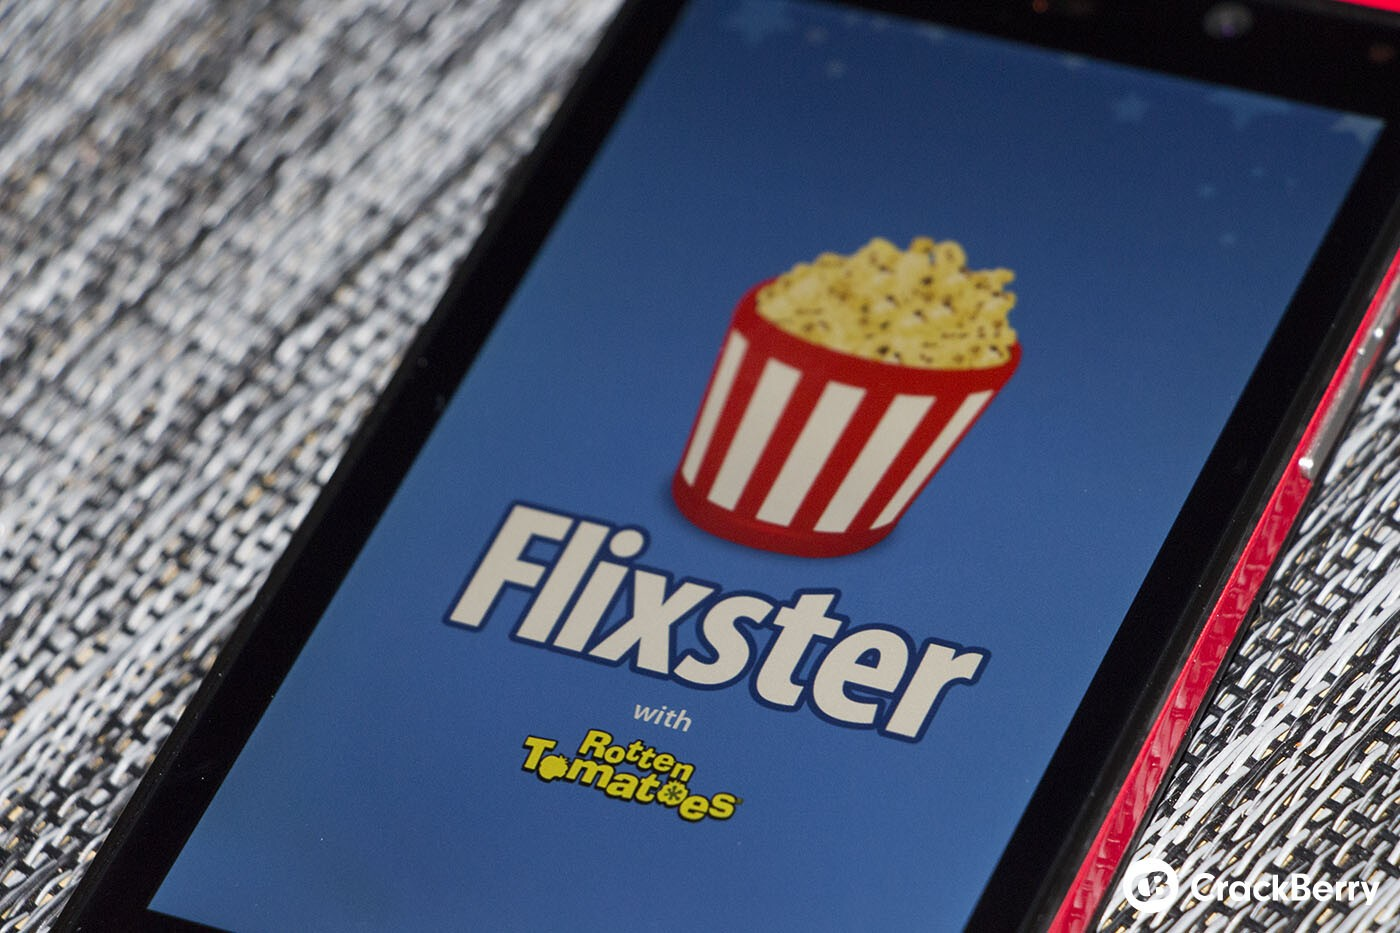 Flixster dating site